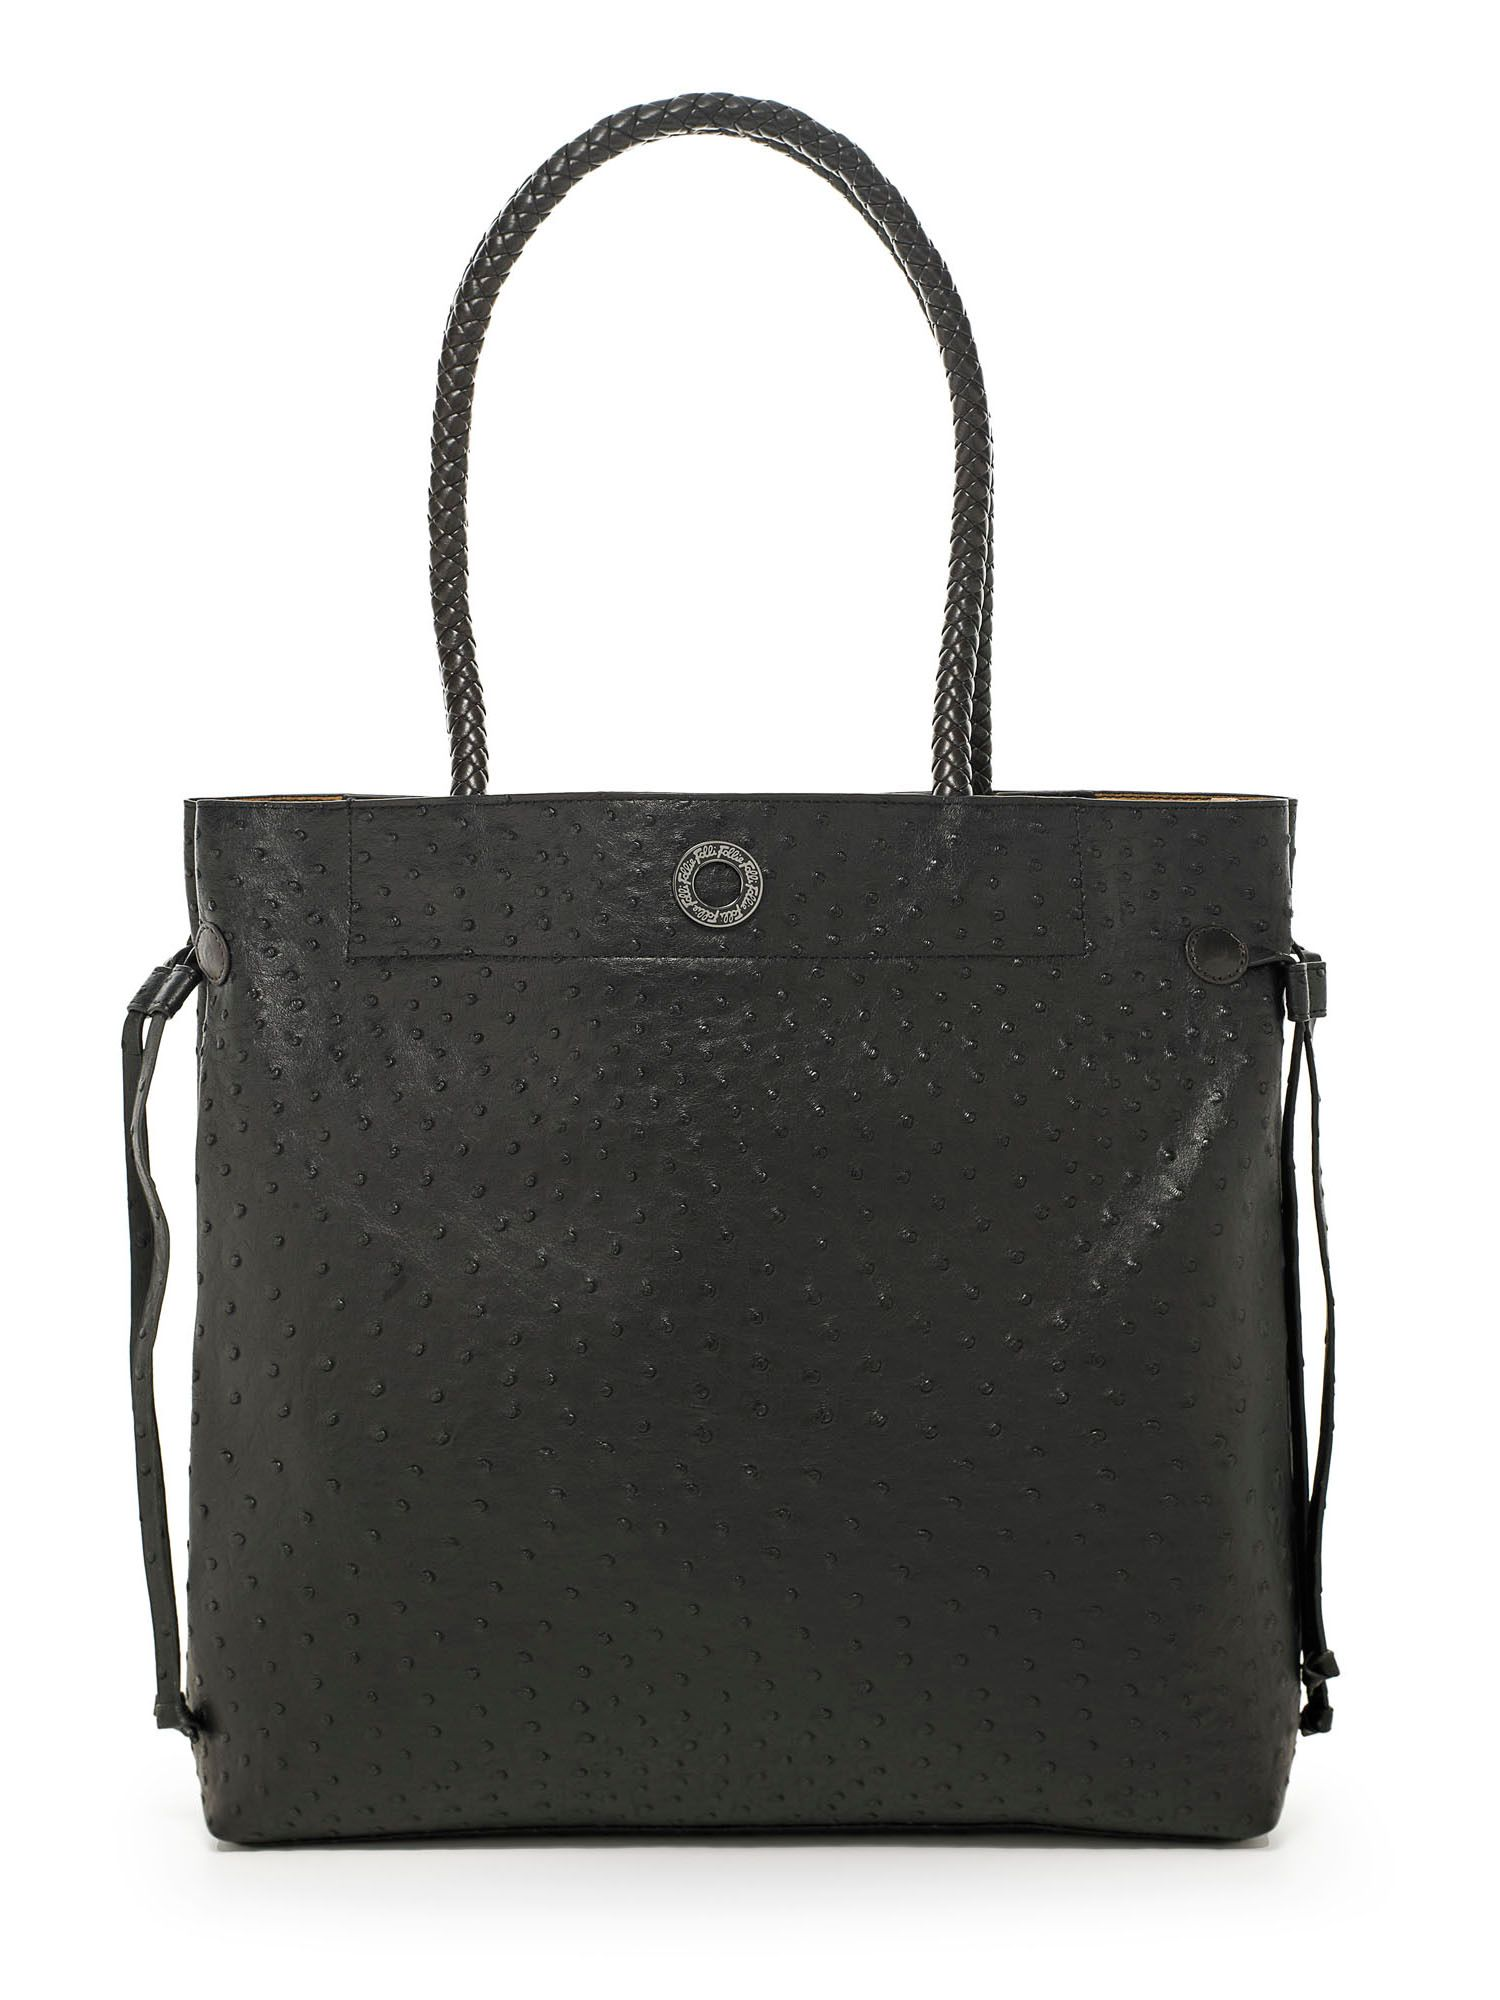 Foliage shoulderbag